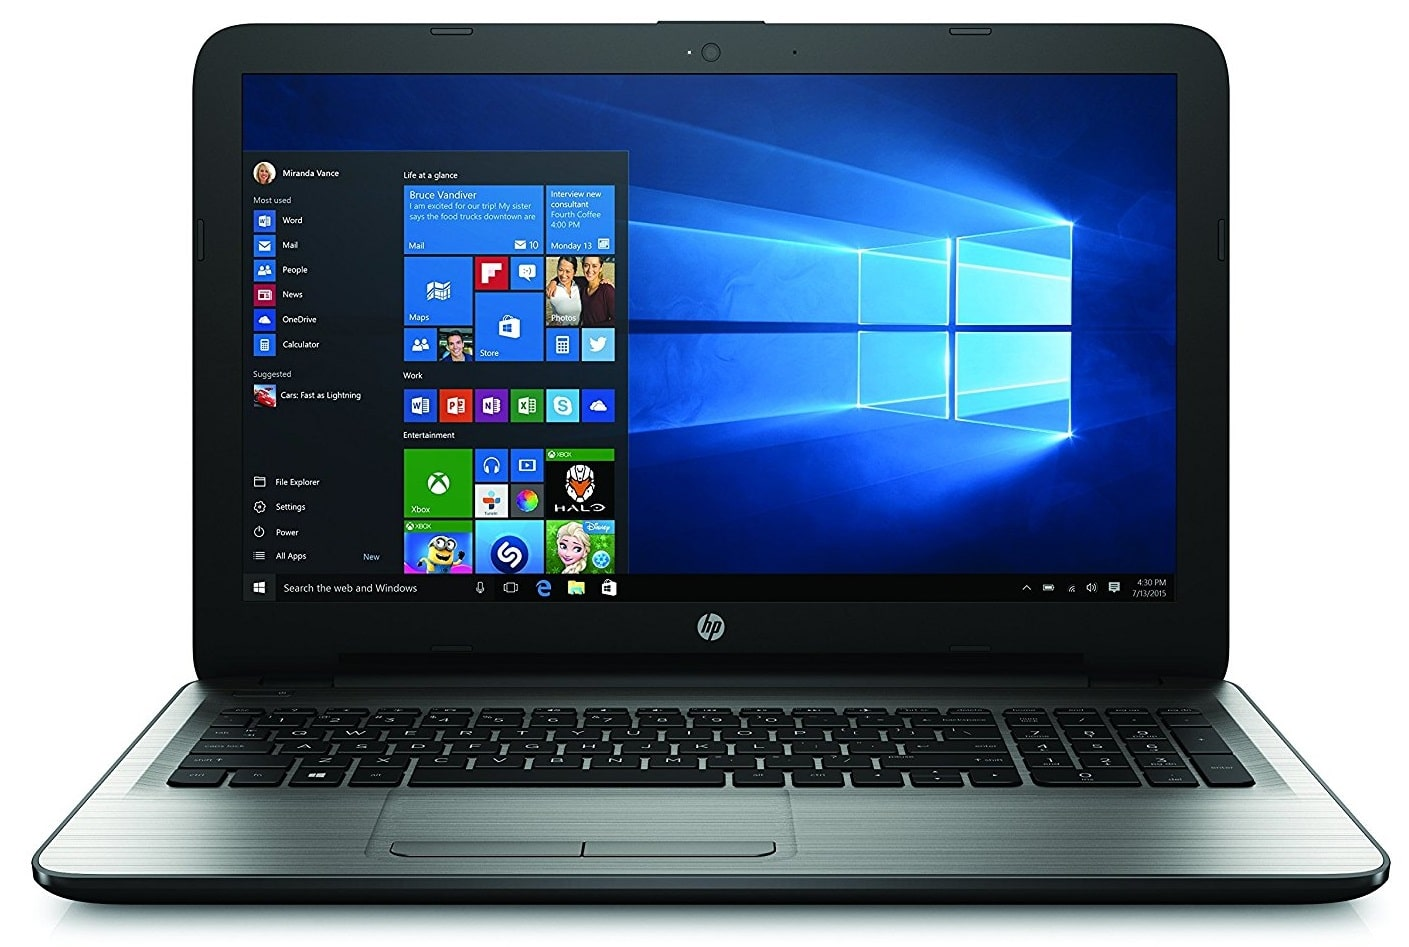 HP 15 best laptop under 400 uk